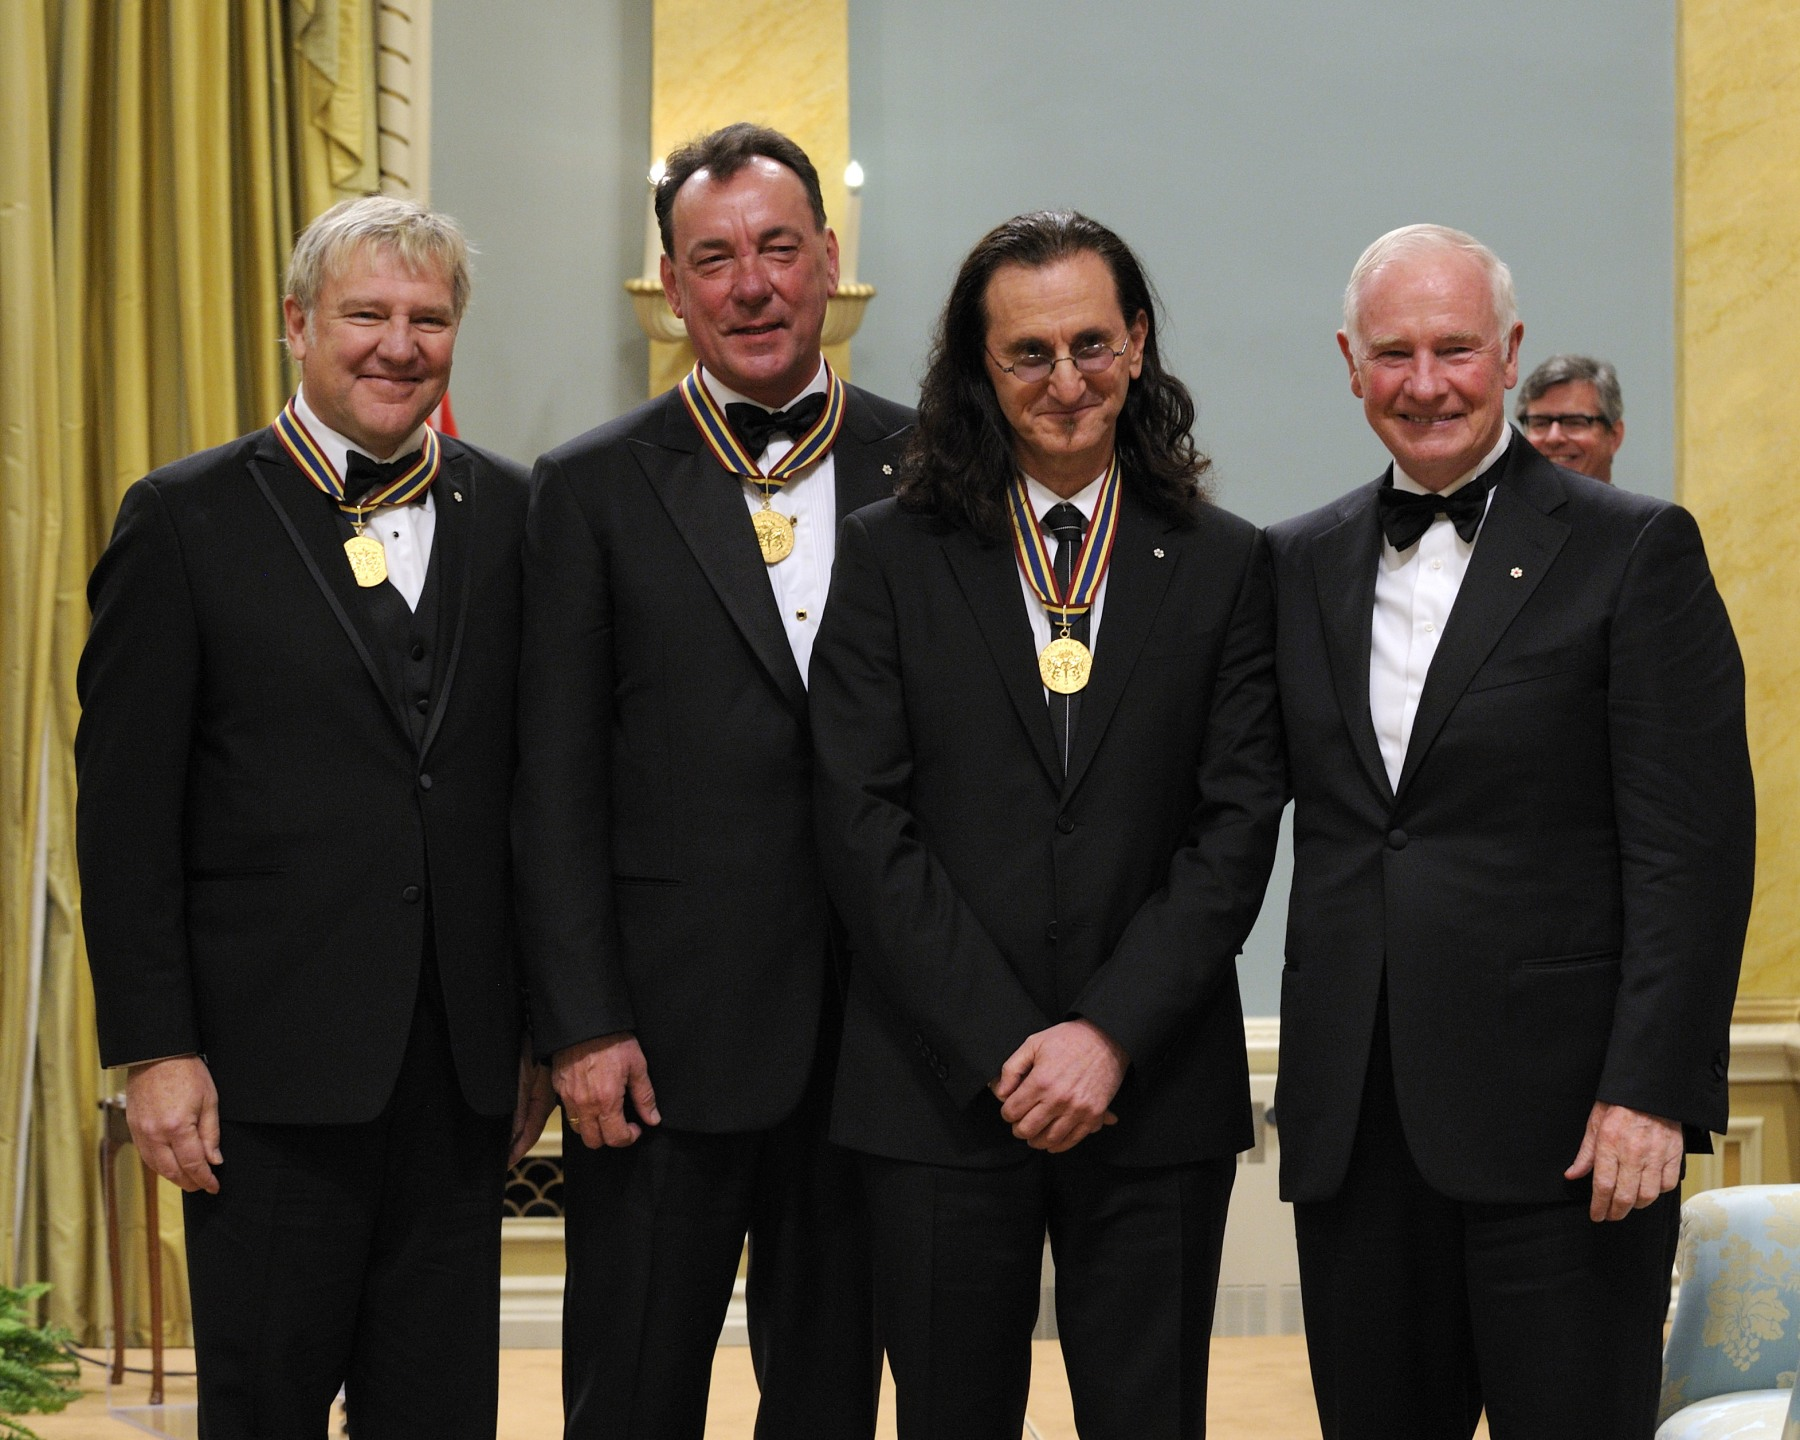 Mr. Alex Lifeson (guitar), Mr. Neil Peart (drums) and Mr. Geddy Lee (bass guitar, keyboard and lead singer), the members of Rush, the rock band, received the Lifetime Artistic Achievement Award.